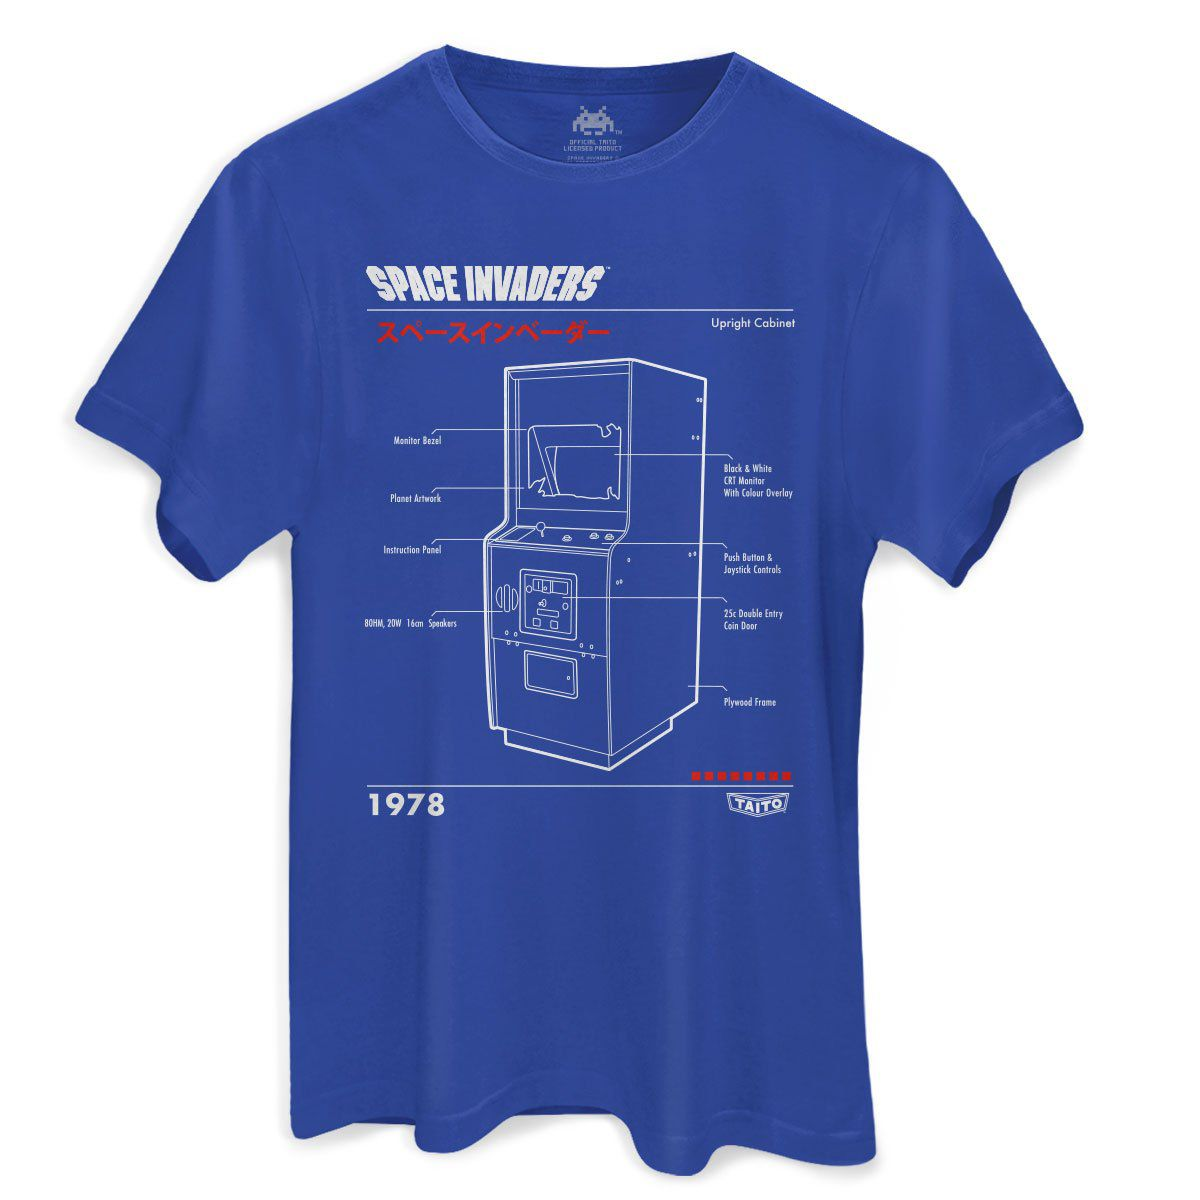 Camiseta Masculina Space Invaders Upright Cabinet Blue  - bandUP Store Marketplace